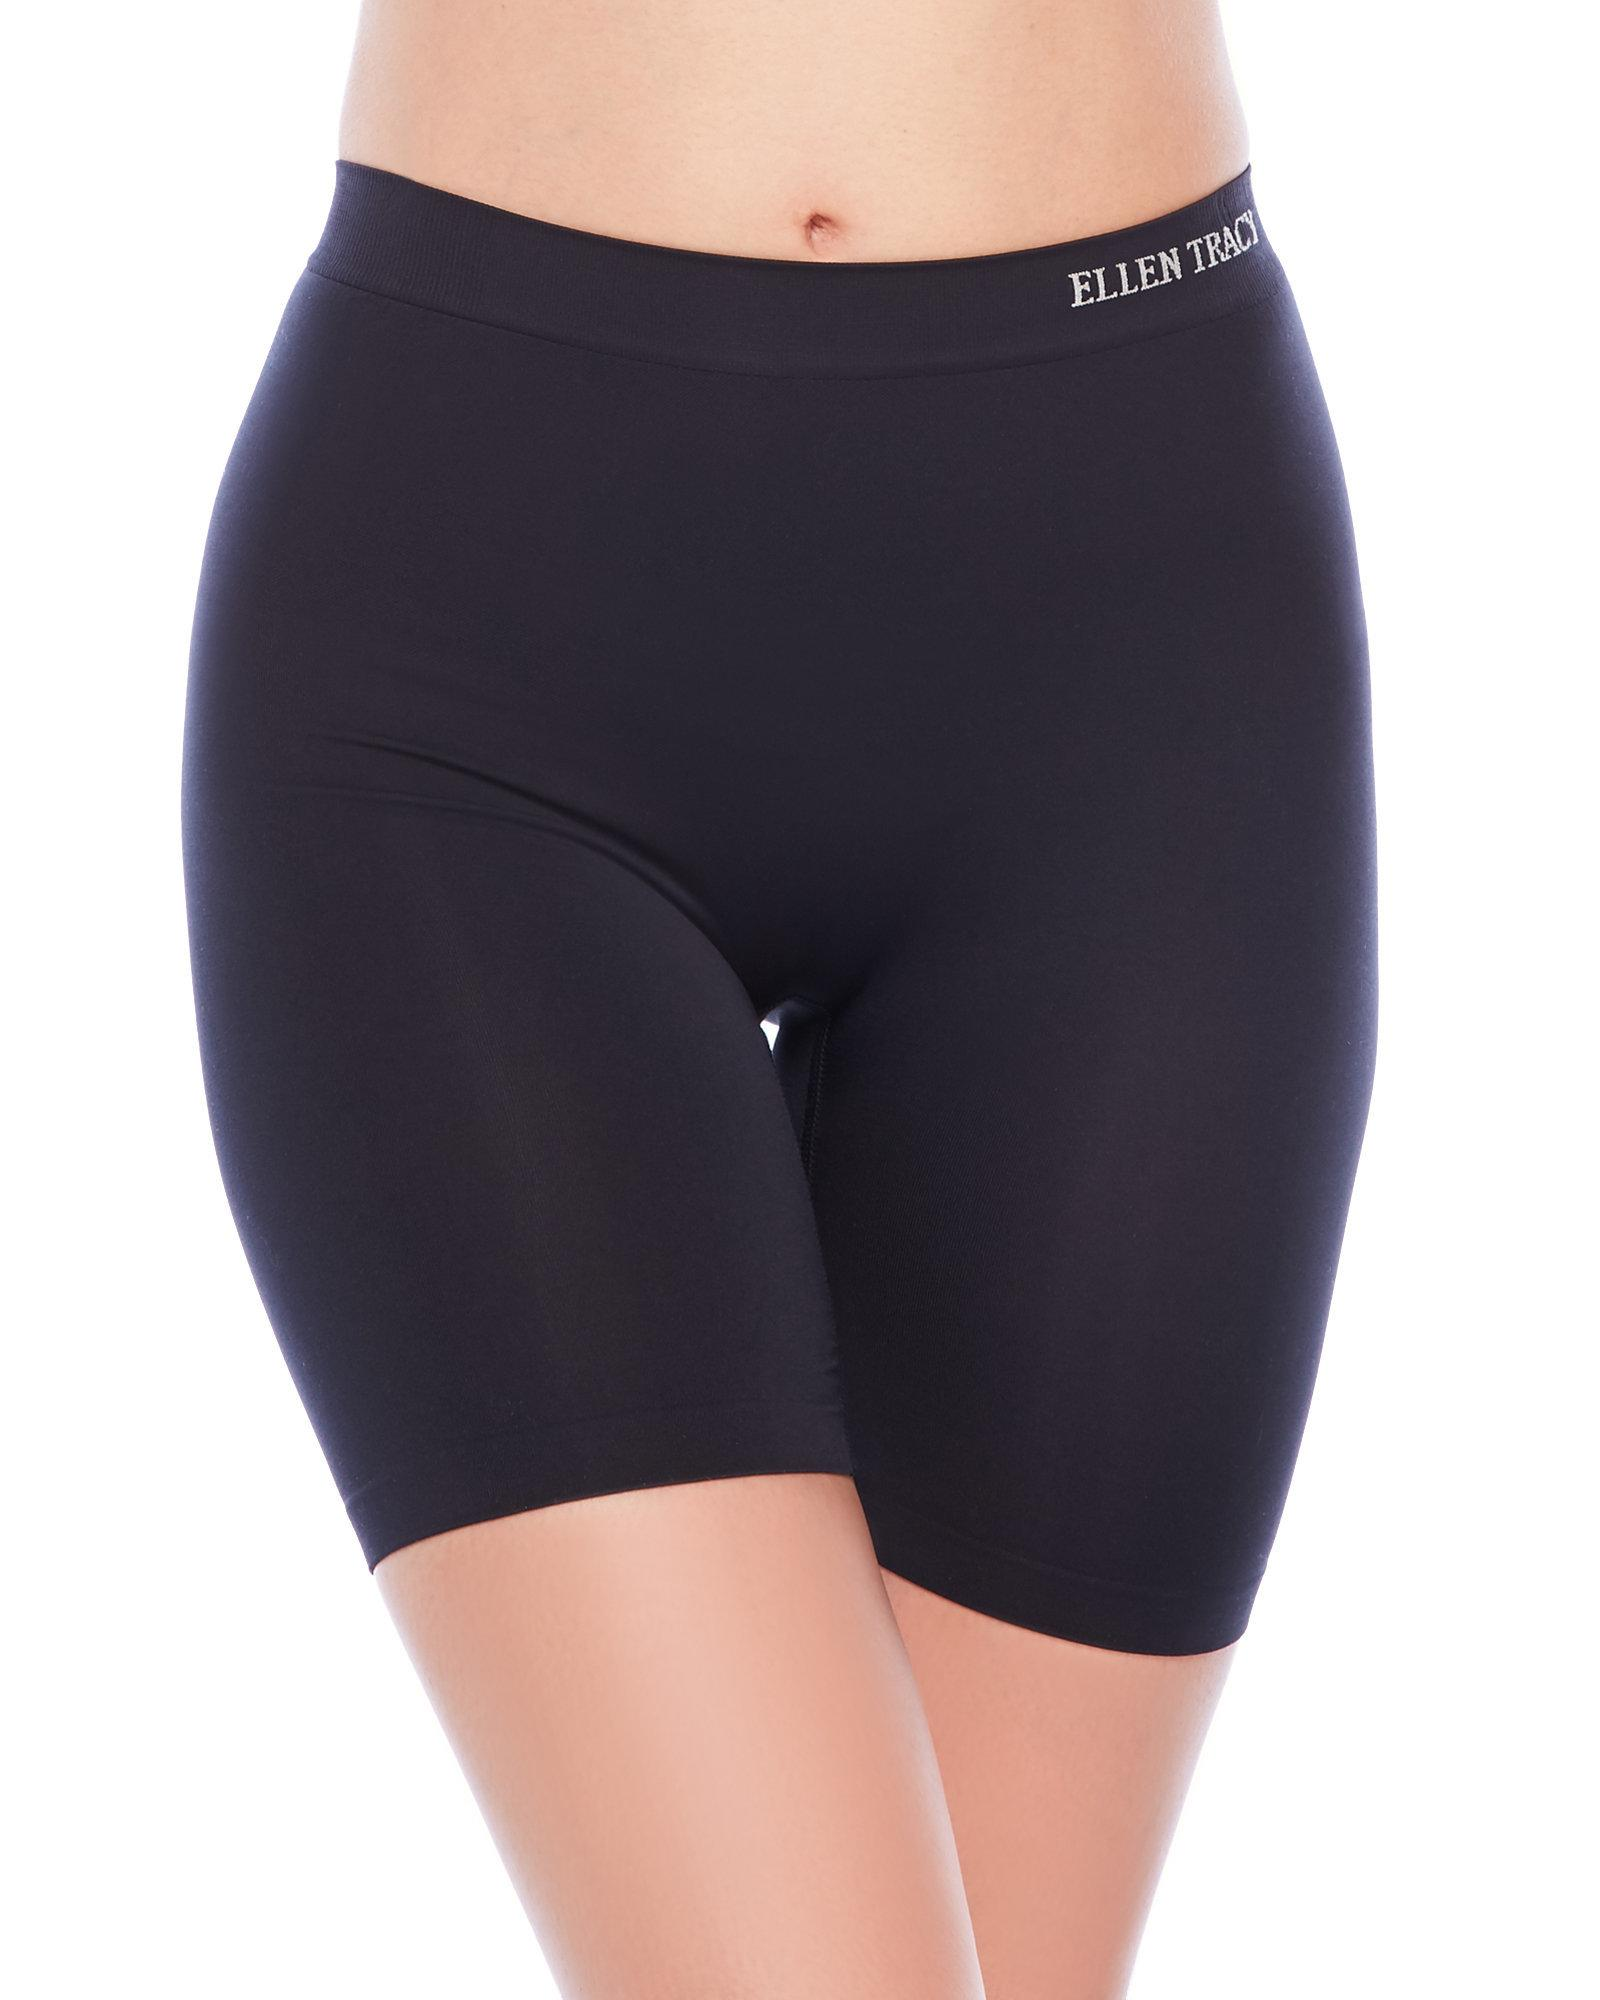 Two pack Seamless Shaper Shorts